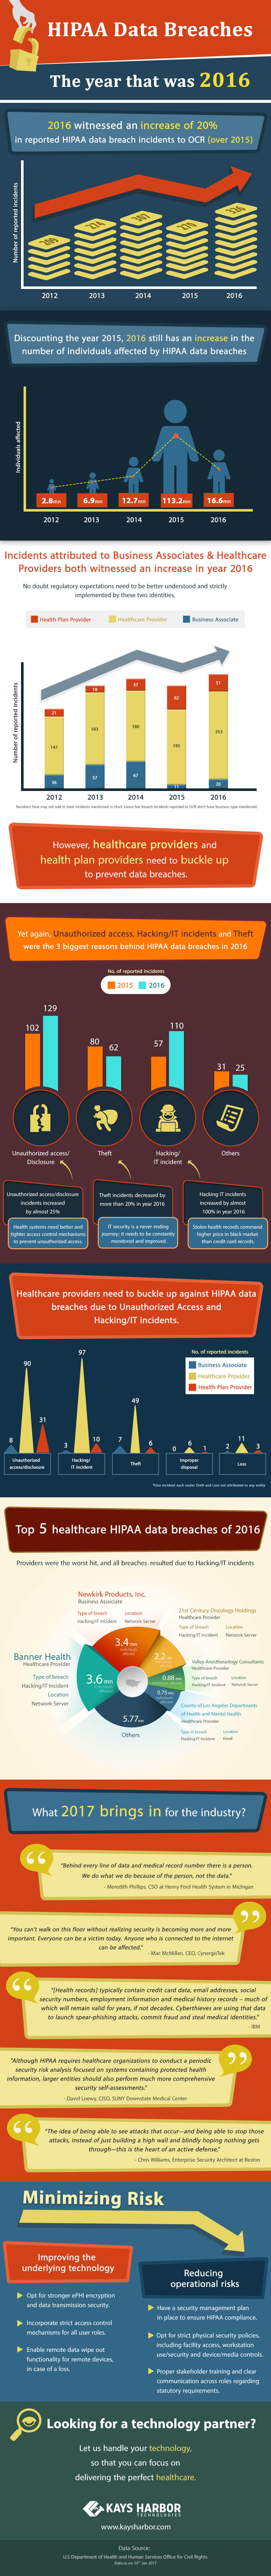 HIPAA data breaches – The year that was 2016